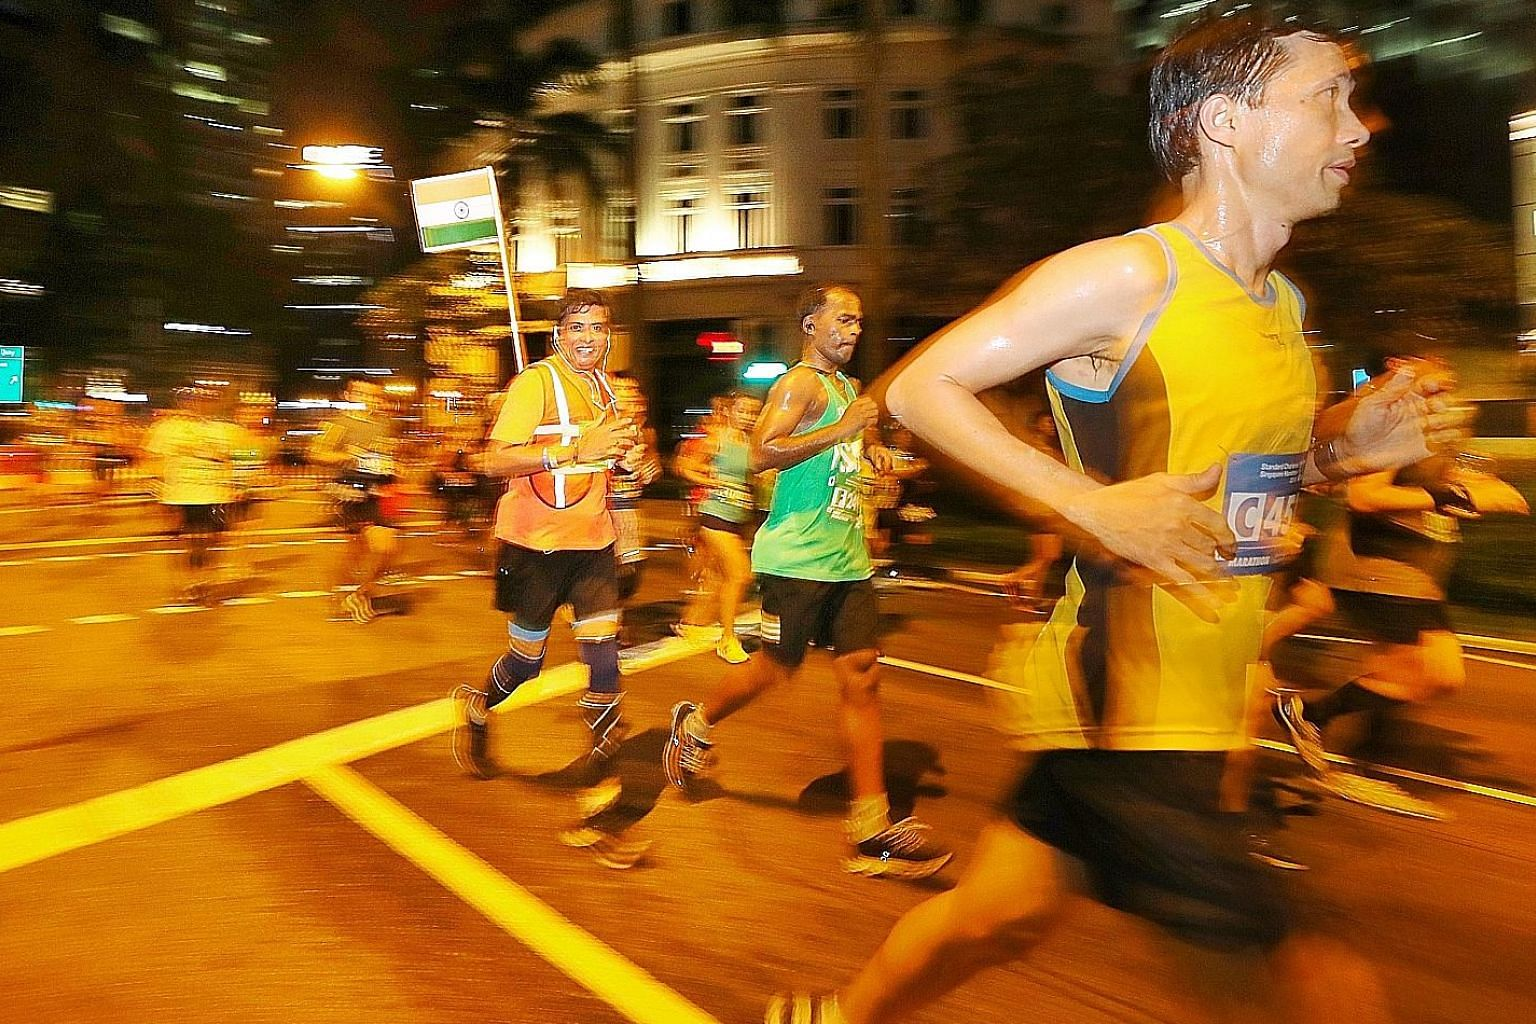 Some 30,000 participants pounded the roads in the downtown area, including Robinson Road.